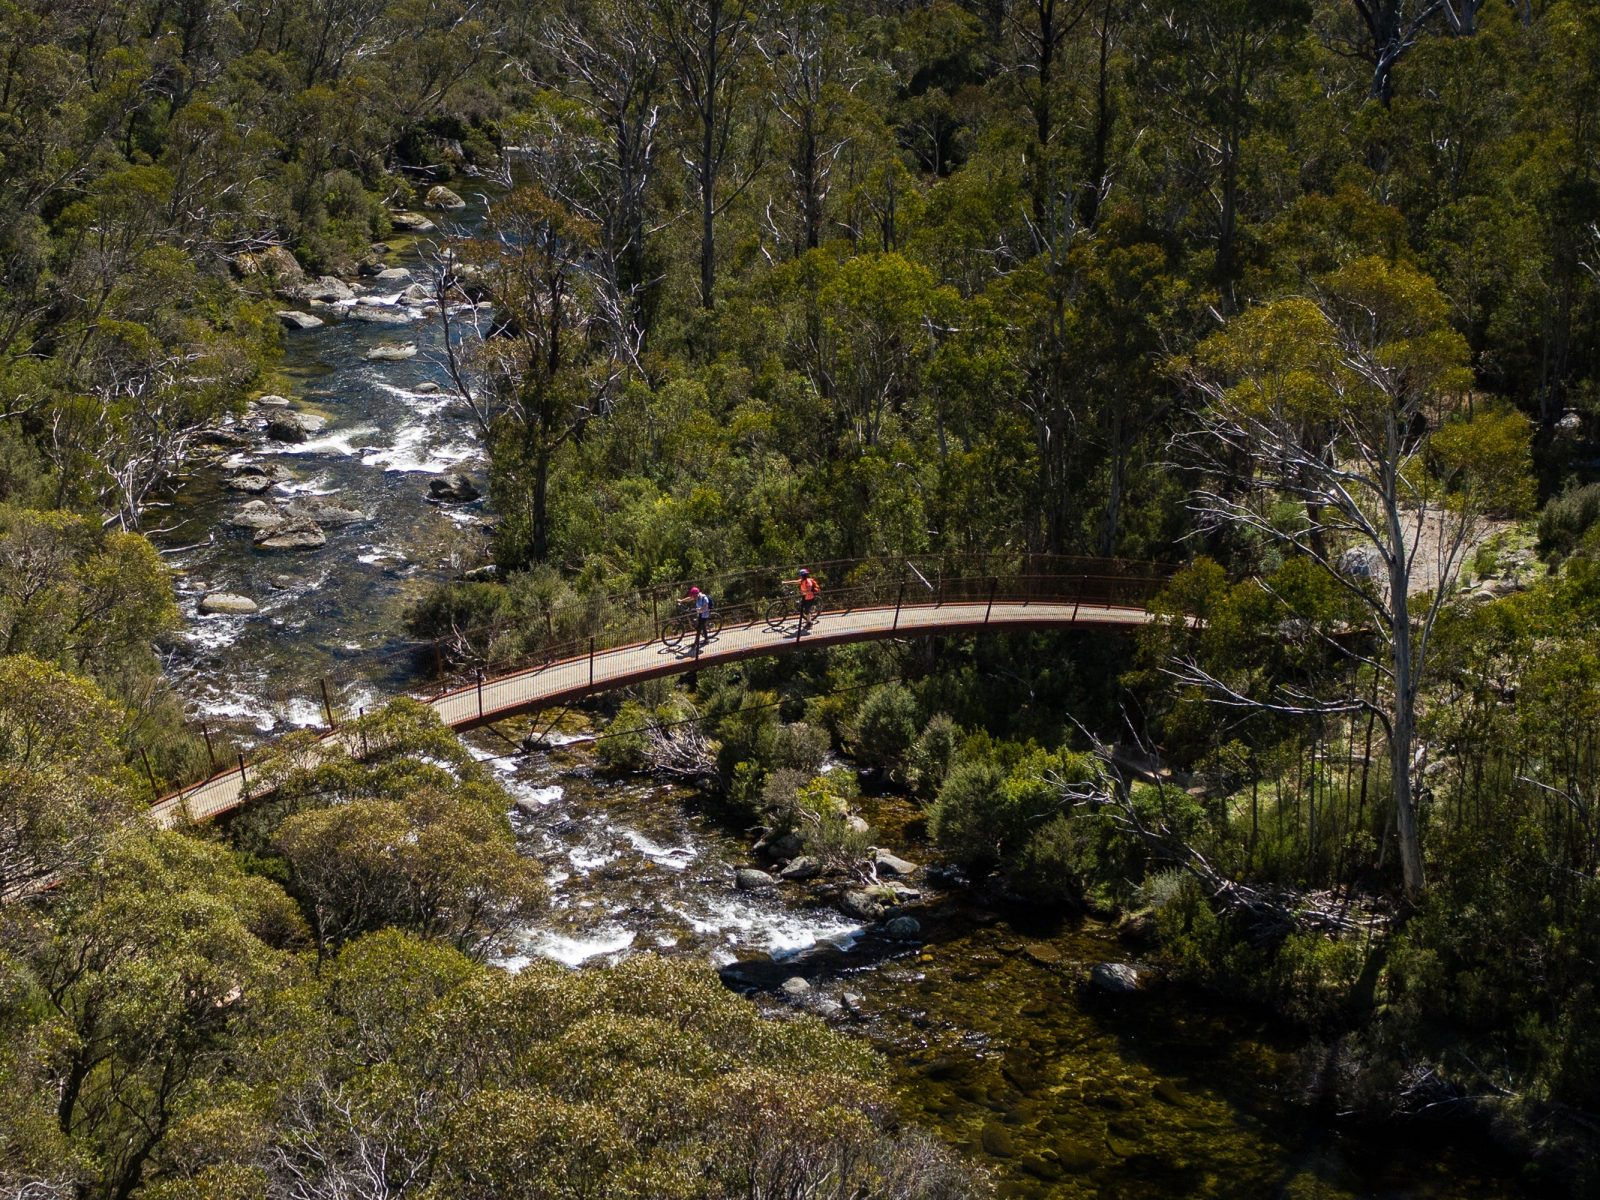 Aerial view of two bike riders crossing a bridge on Thredbo Valley track, Kosciuszko National Park